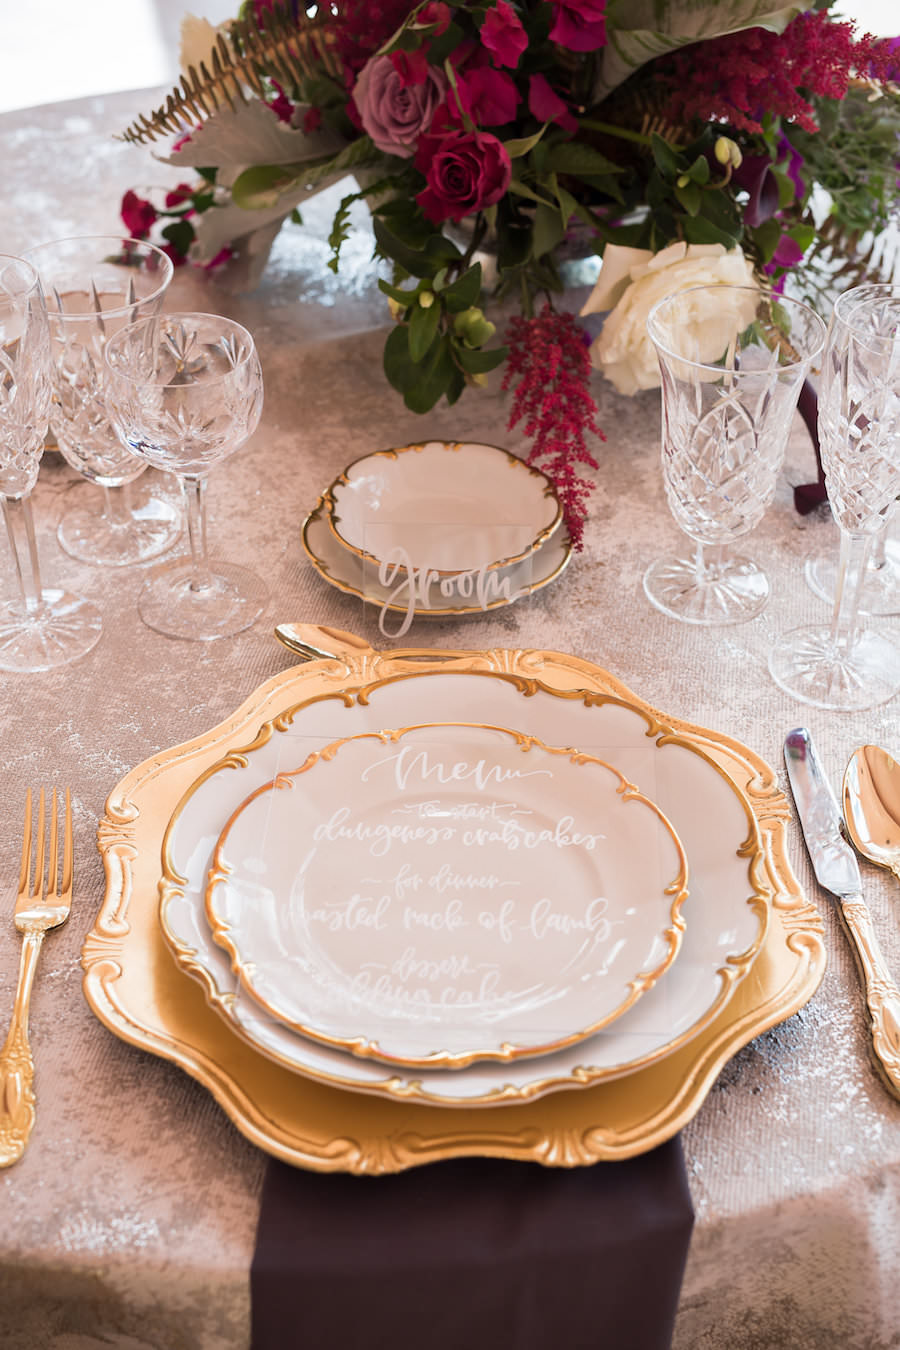 European Inspired Wedding Reception Inspiration and Decor | Gold Charger, Flatware, Vintage China and Acrylic Calligraphy Menu | Sarasota Wedding Planner NK Productions